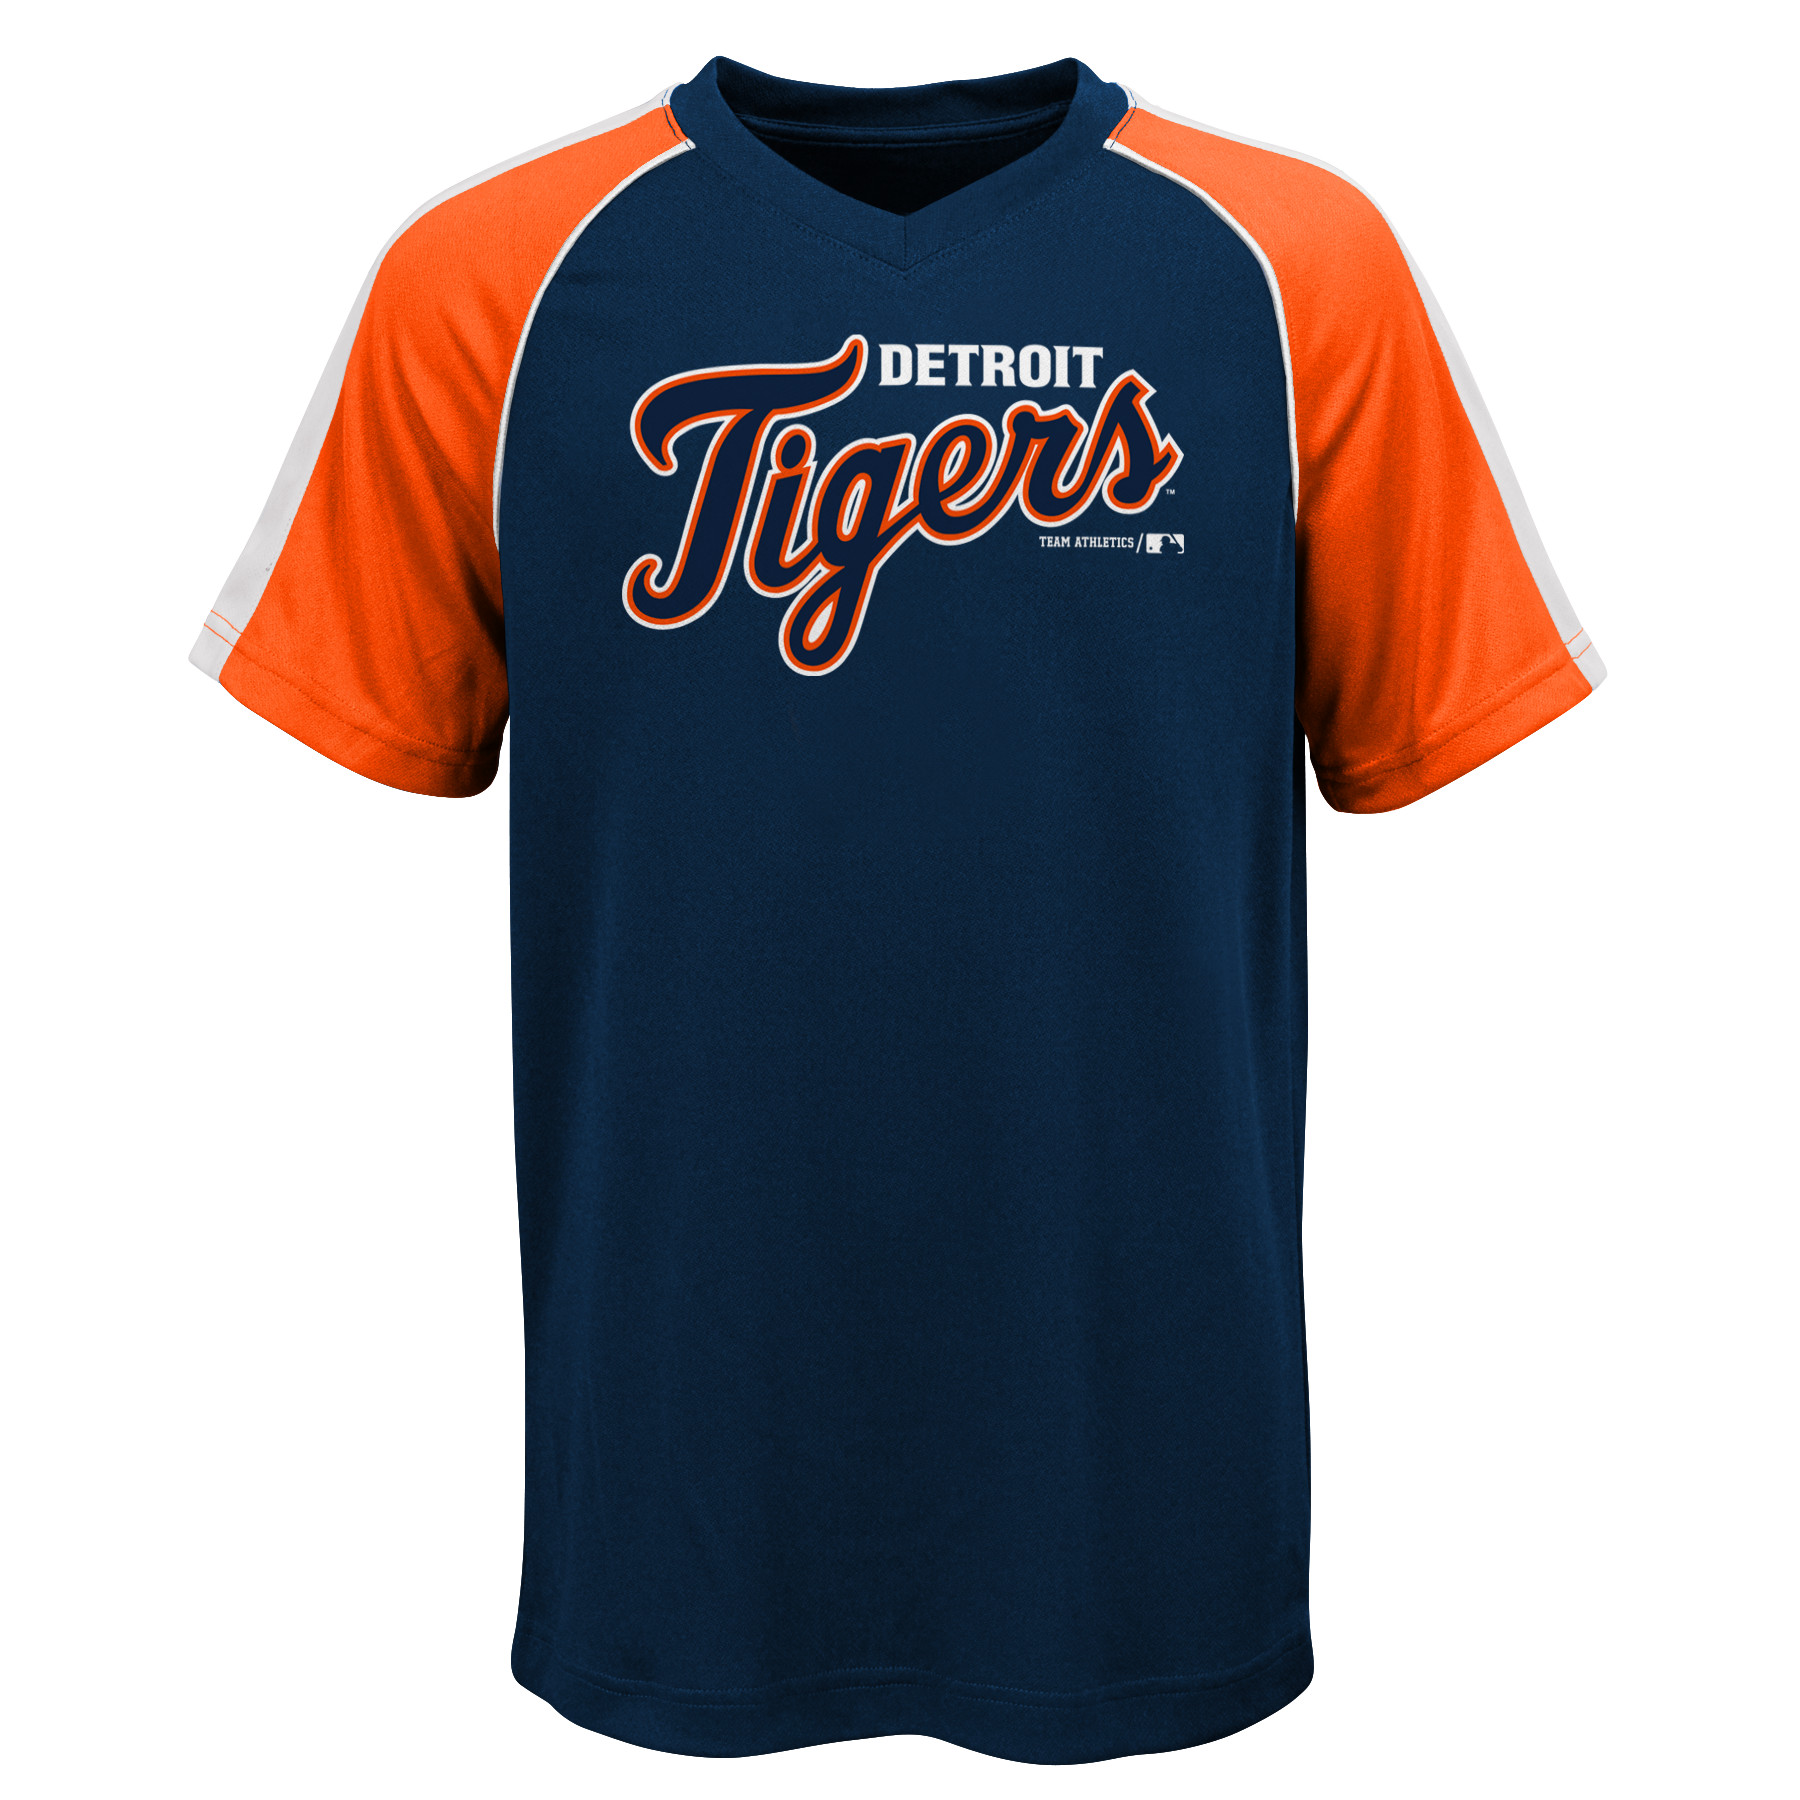 MLB Detroit TIGERS TEE Short Sleeve Boys Fashion Jersey Tee 100% Polyester Pin Dot Mesh Jersey Team Tee 4-18